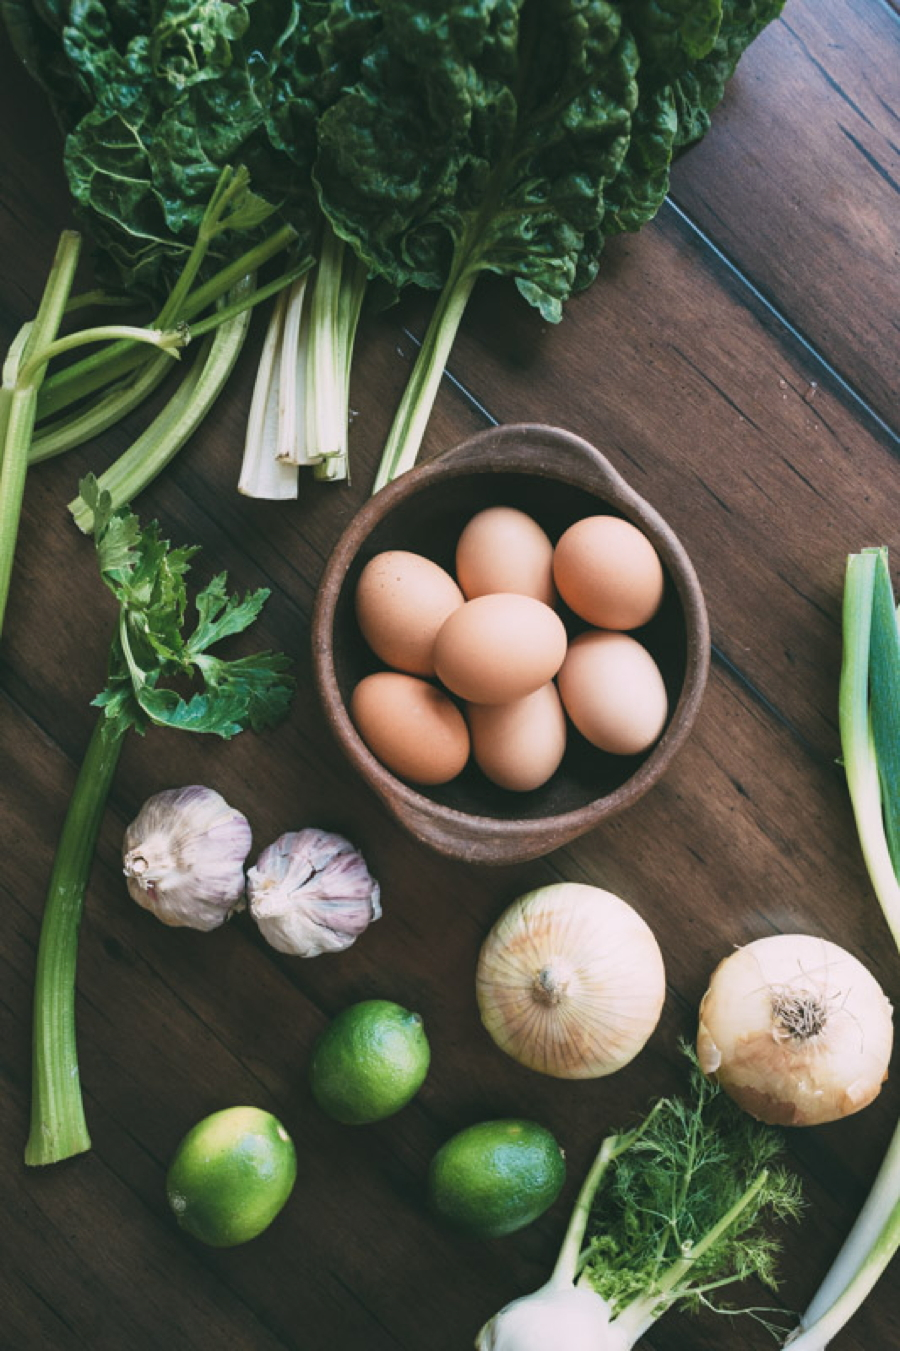 chard coconut detox soup with poached eggs: a vibrant and restorative soup made with chard, onion, fennel, celery and garlic, and paired with a nutritionally dense bone broth or vitamin rich vegetable stock + poached eggs to detox and support your body from the inside out!   www.nyssaskitchen.com